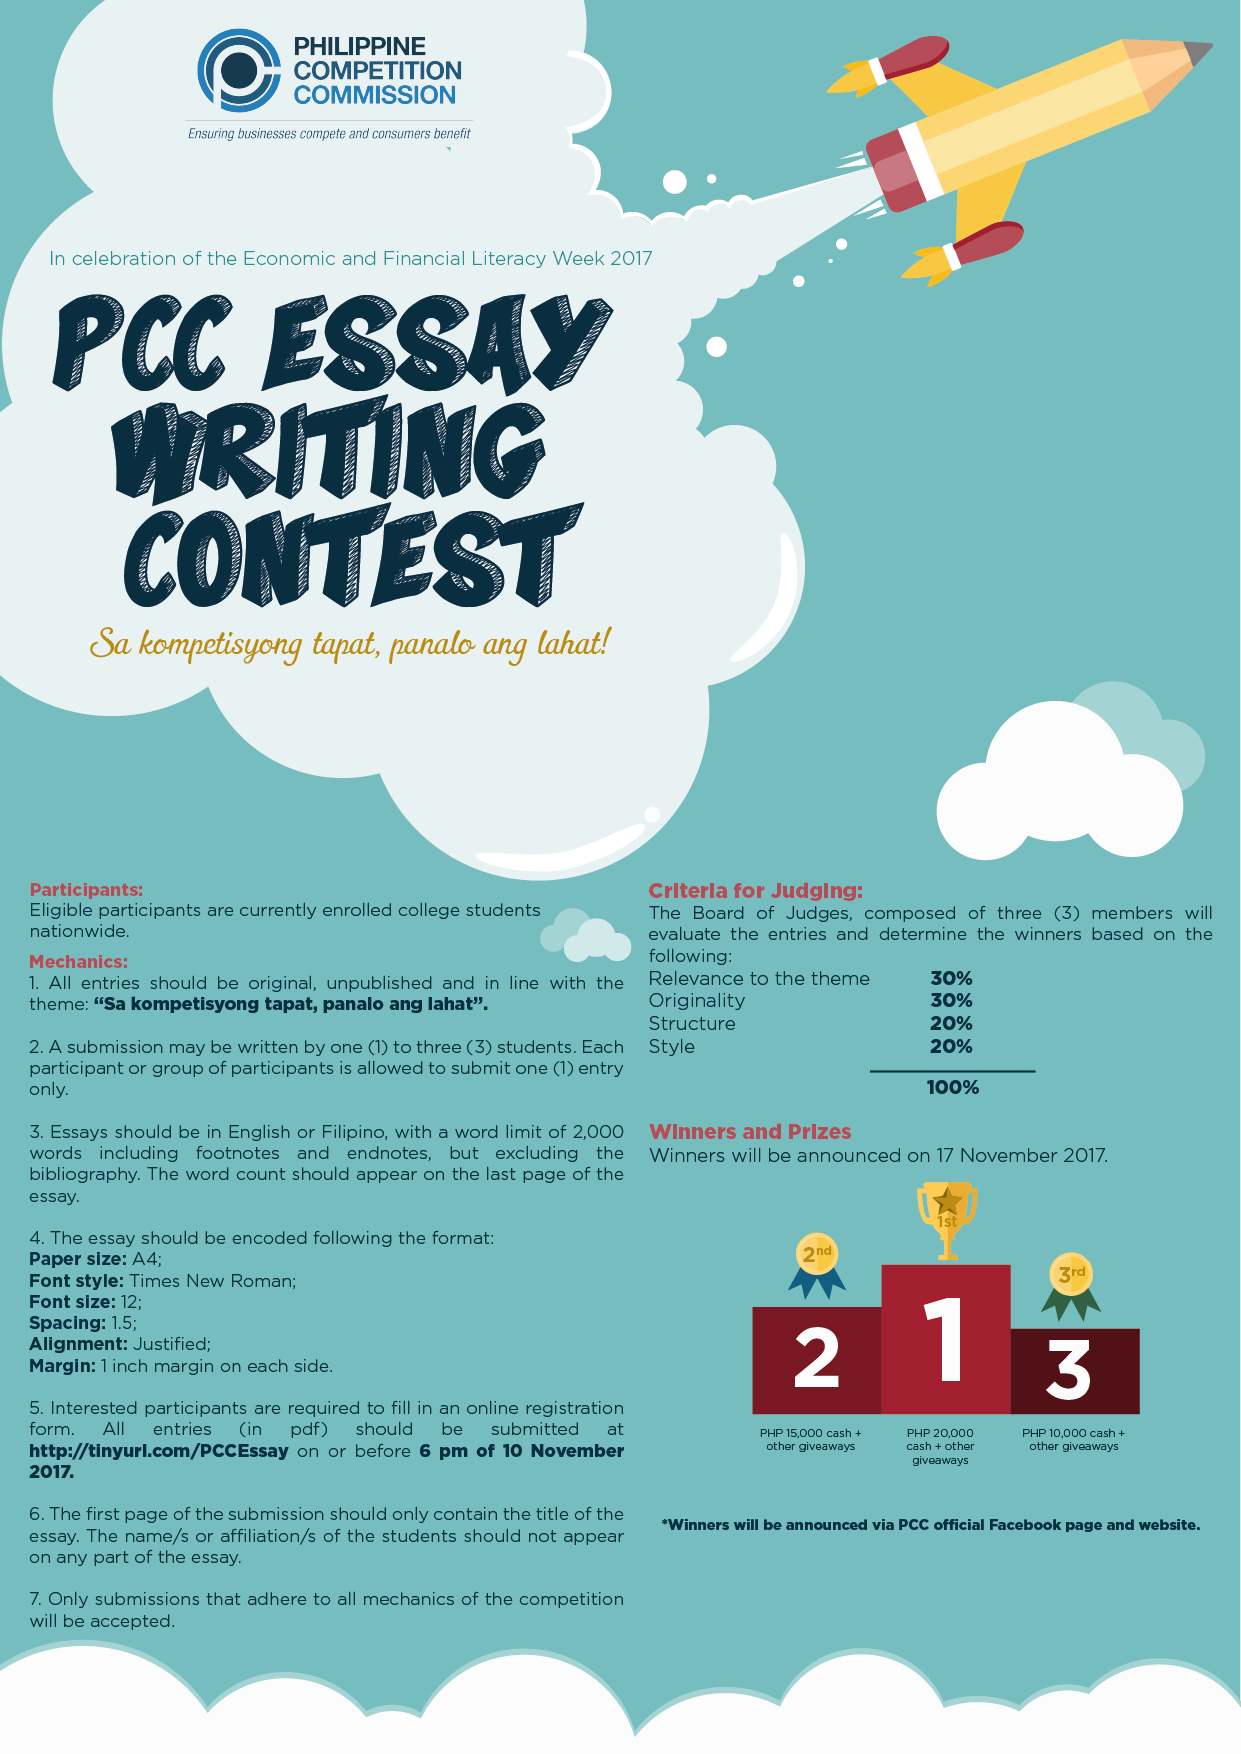 004 Essay Example Writing Contest Poster Final Incredible International Competitions For High School Students Rules By Essayhub Full